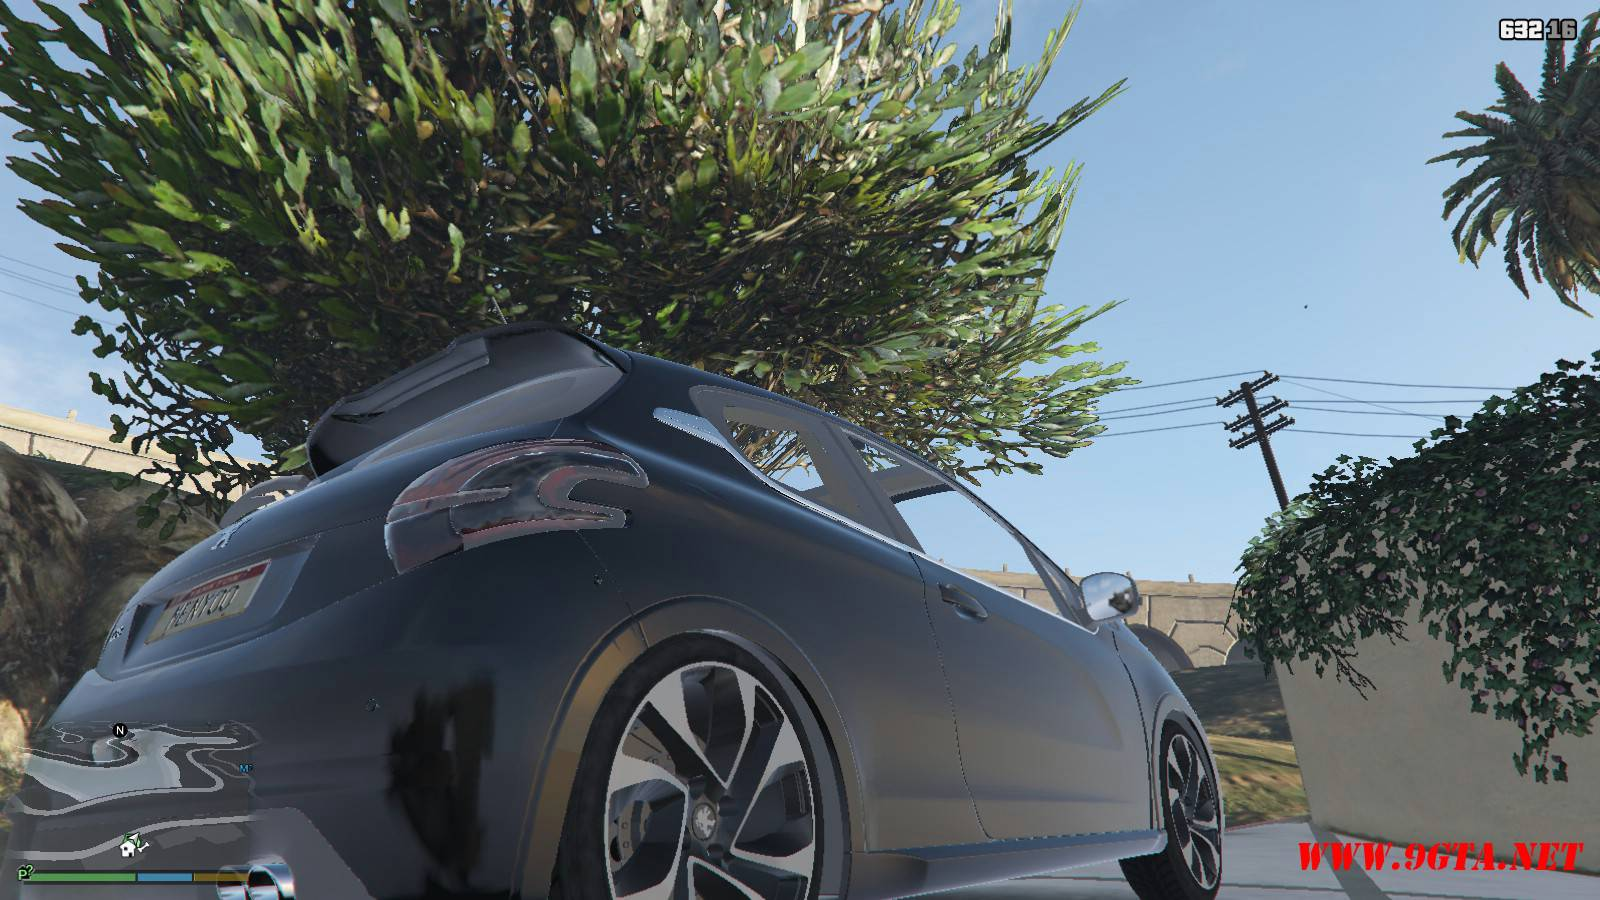 Peugeot 208 Mod For GTA5 (8)